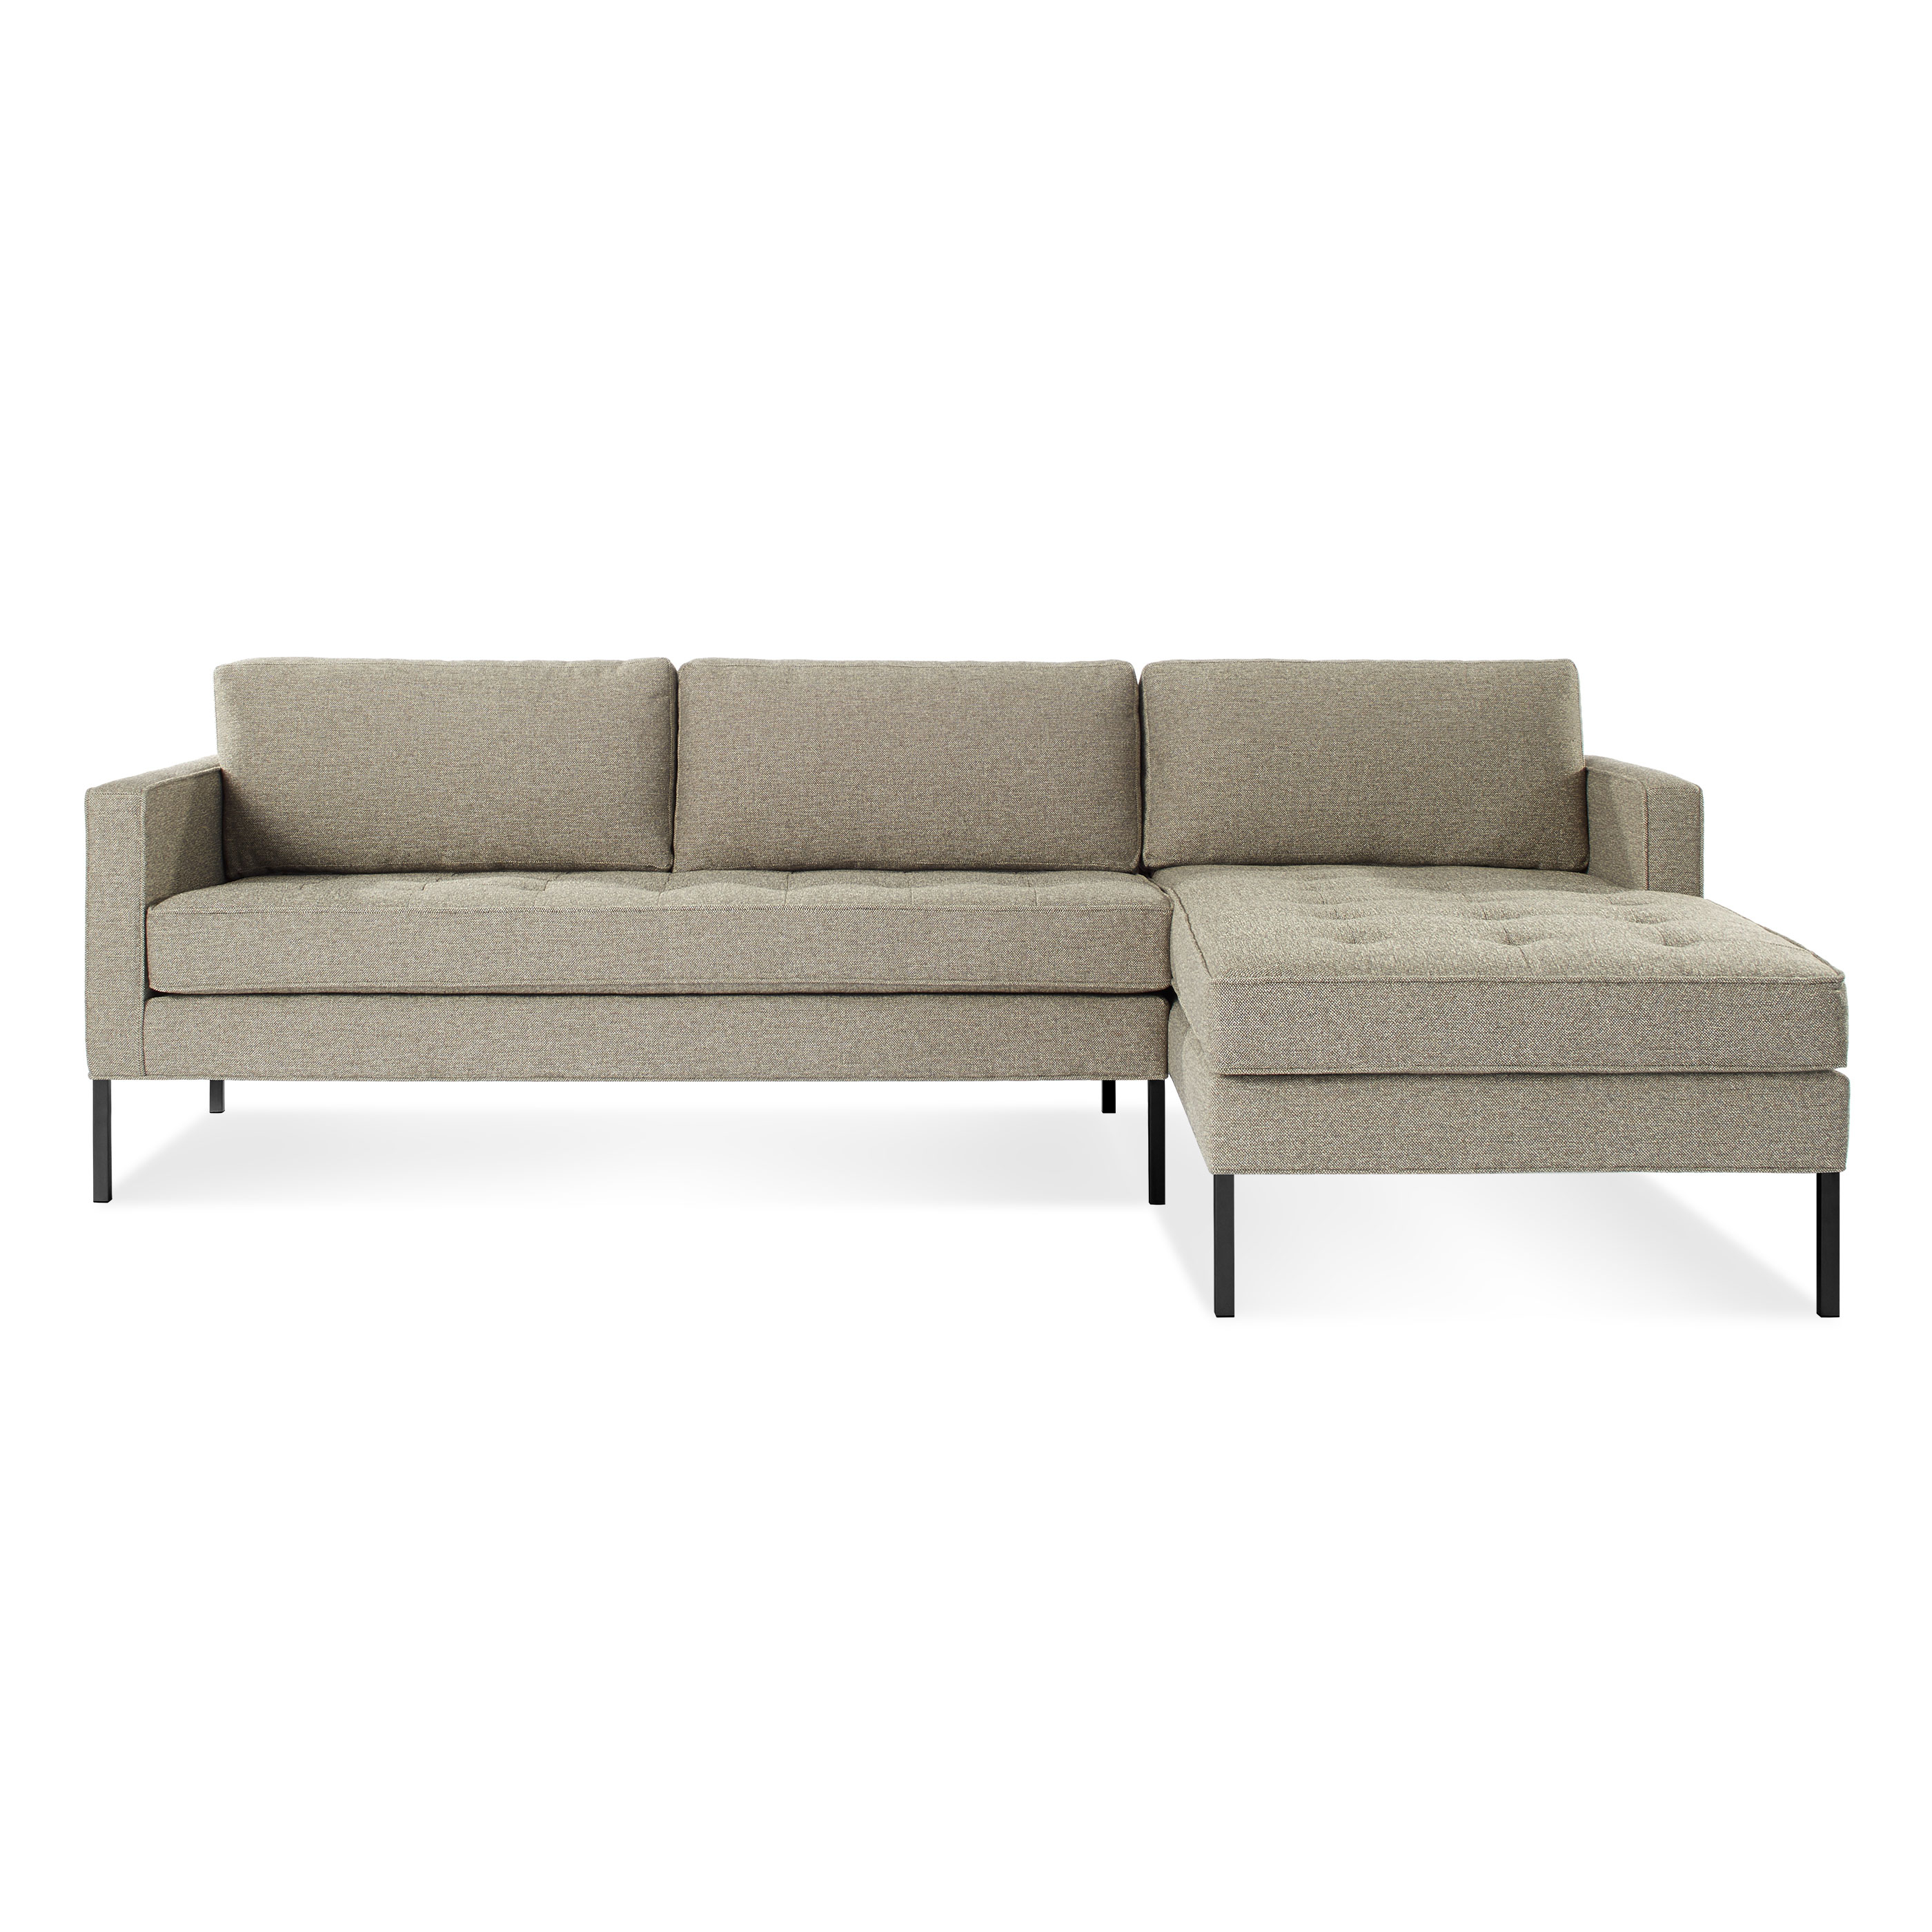 Taren Reversible Sofa/chaise Sleeper Sectionals With Storage Ottoman For Trendy Fresh Couch With Chaise Opinion – Hello (View 11 of 20)